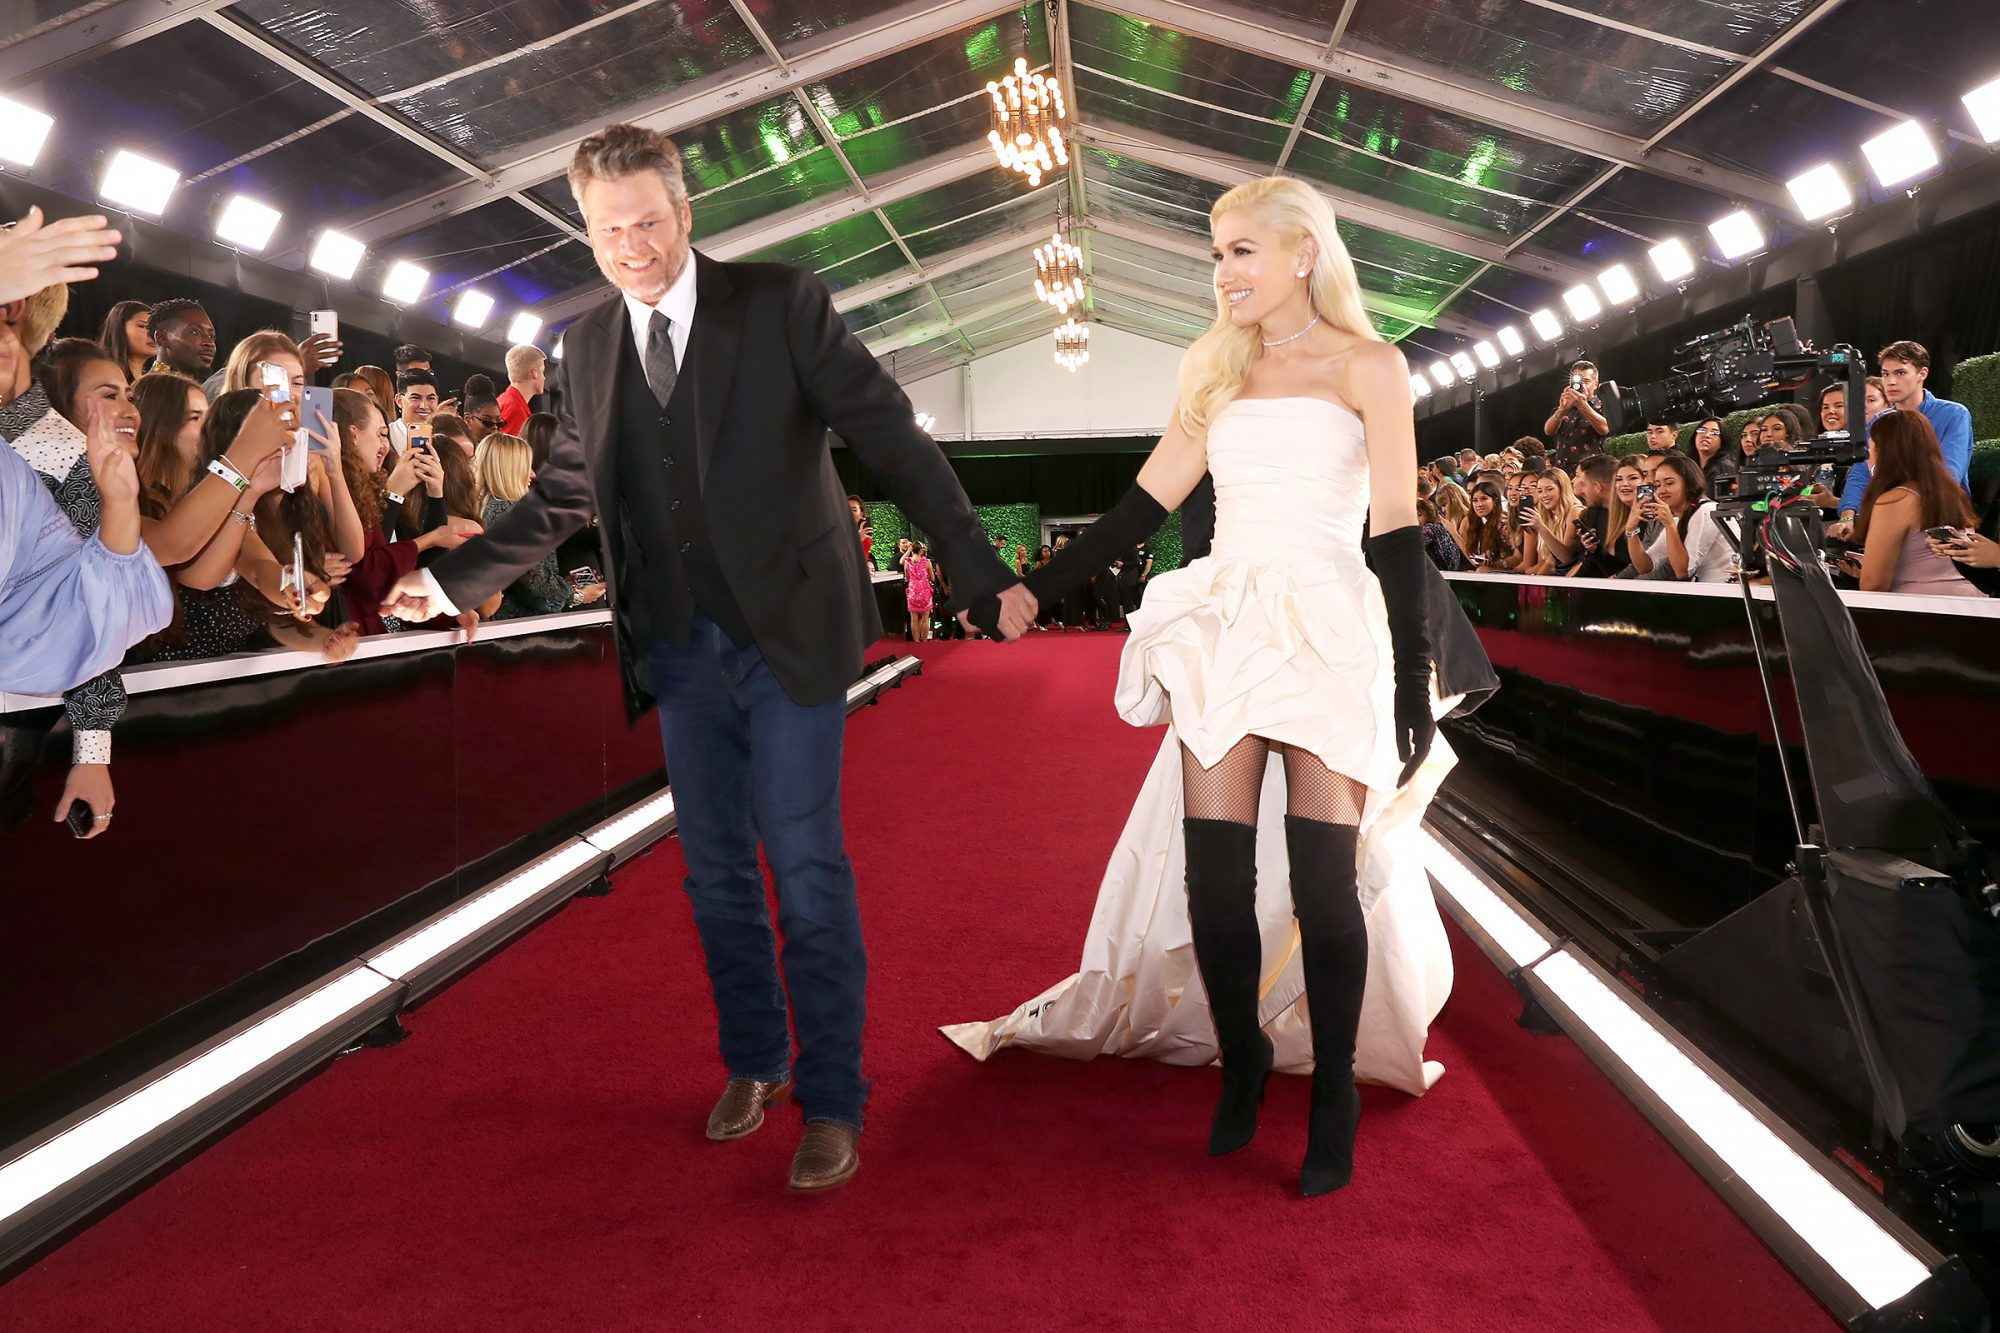 Blake Shelton and Gwen Stefani arrive to the 2019 E! People's Choice Awards held at the Barker Hangar on November 10, 2019